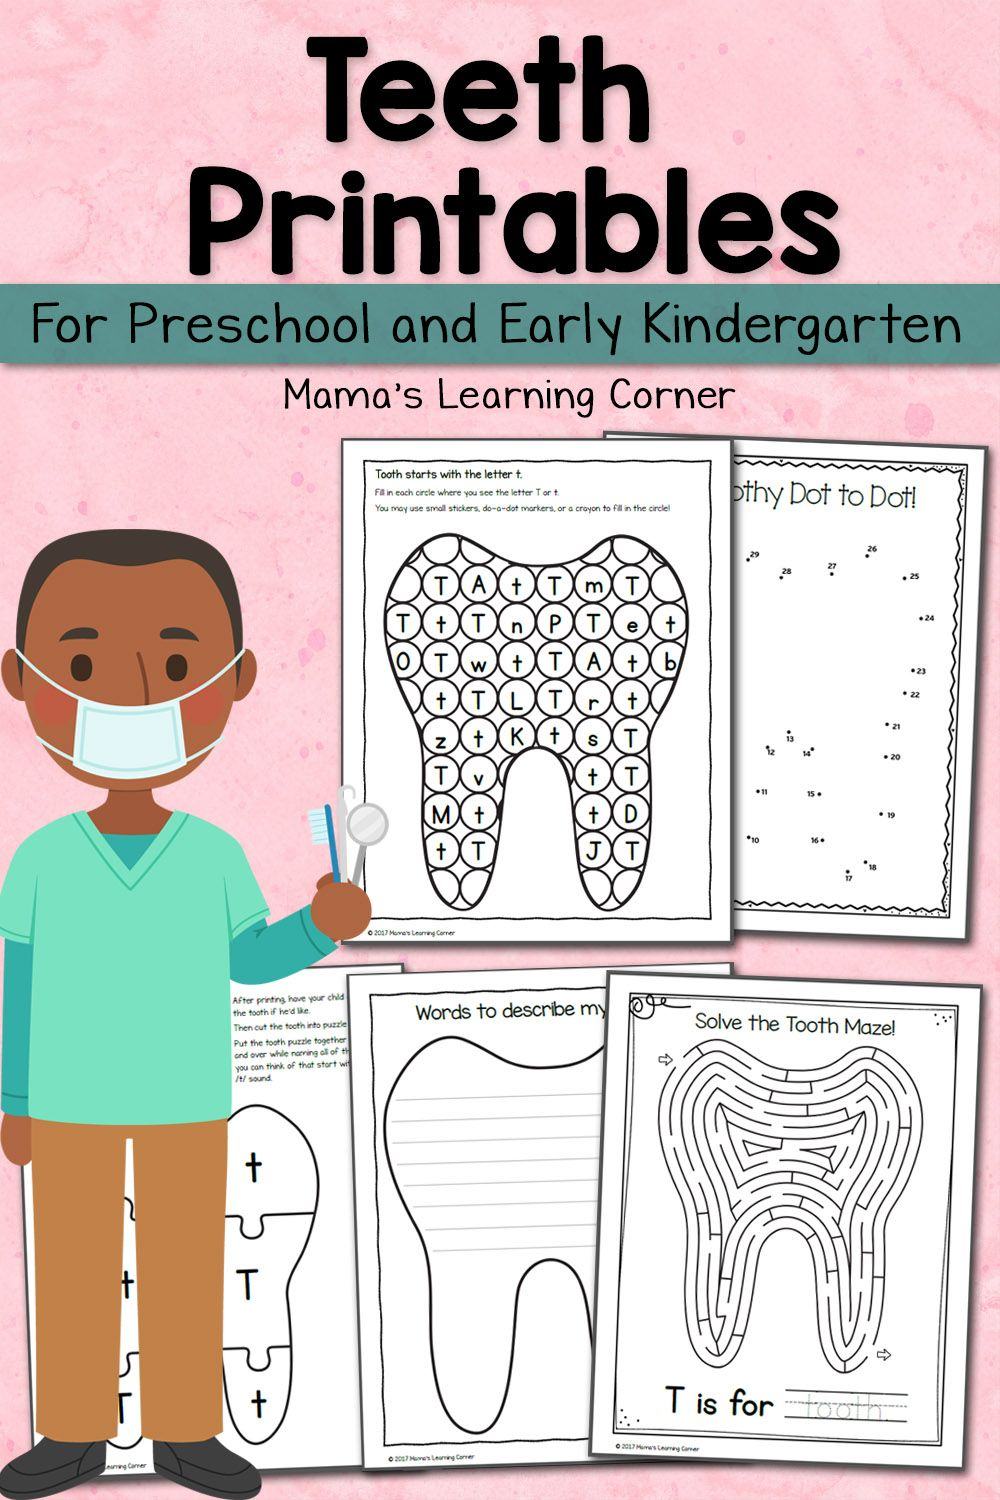 Teeth Printables for Preschool and Kindergarten | Mama's ...